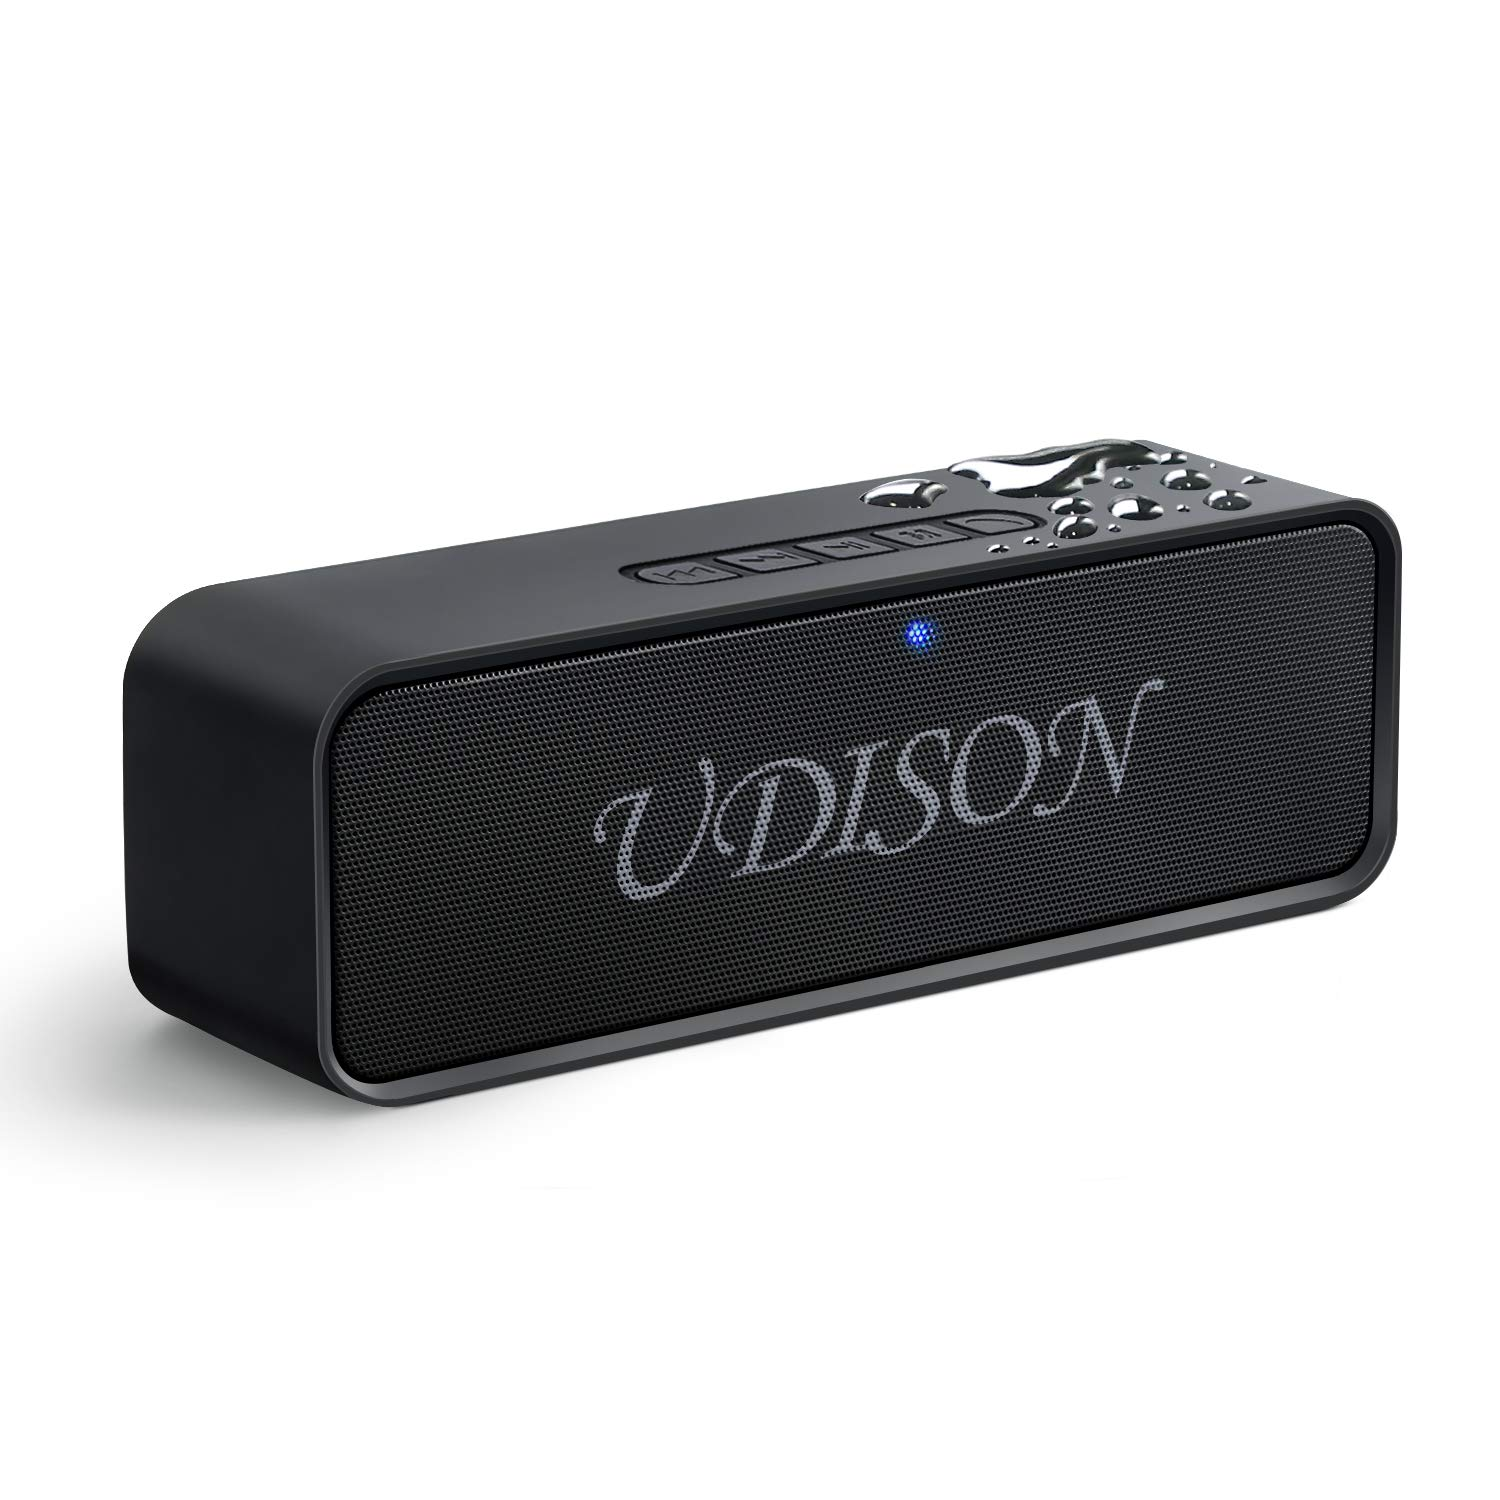 bd732085d3b226 UDISON Portable Bluetooth Speaker, Wireless Louder Speakers V4.2 with Stereo  Sound and Bass, Built-in Mic, Handsfree, 12 Hour Playtime, IP65 Waterproof,  ...